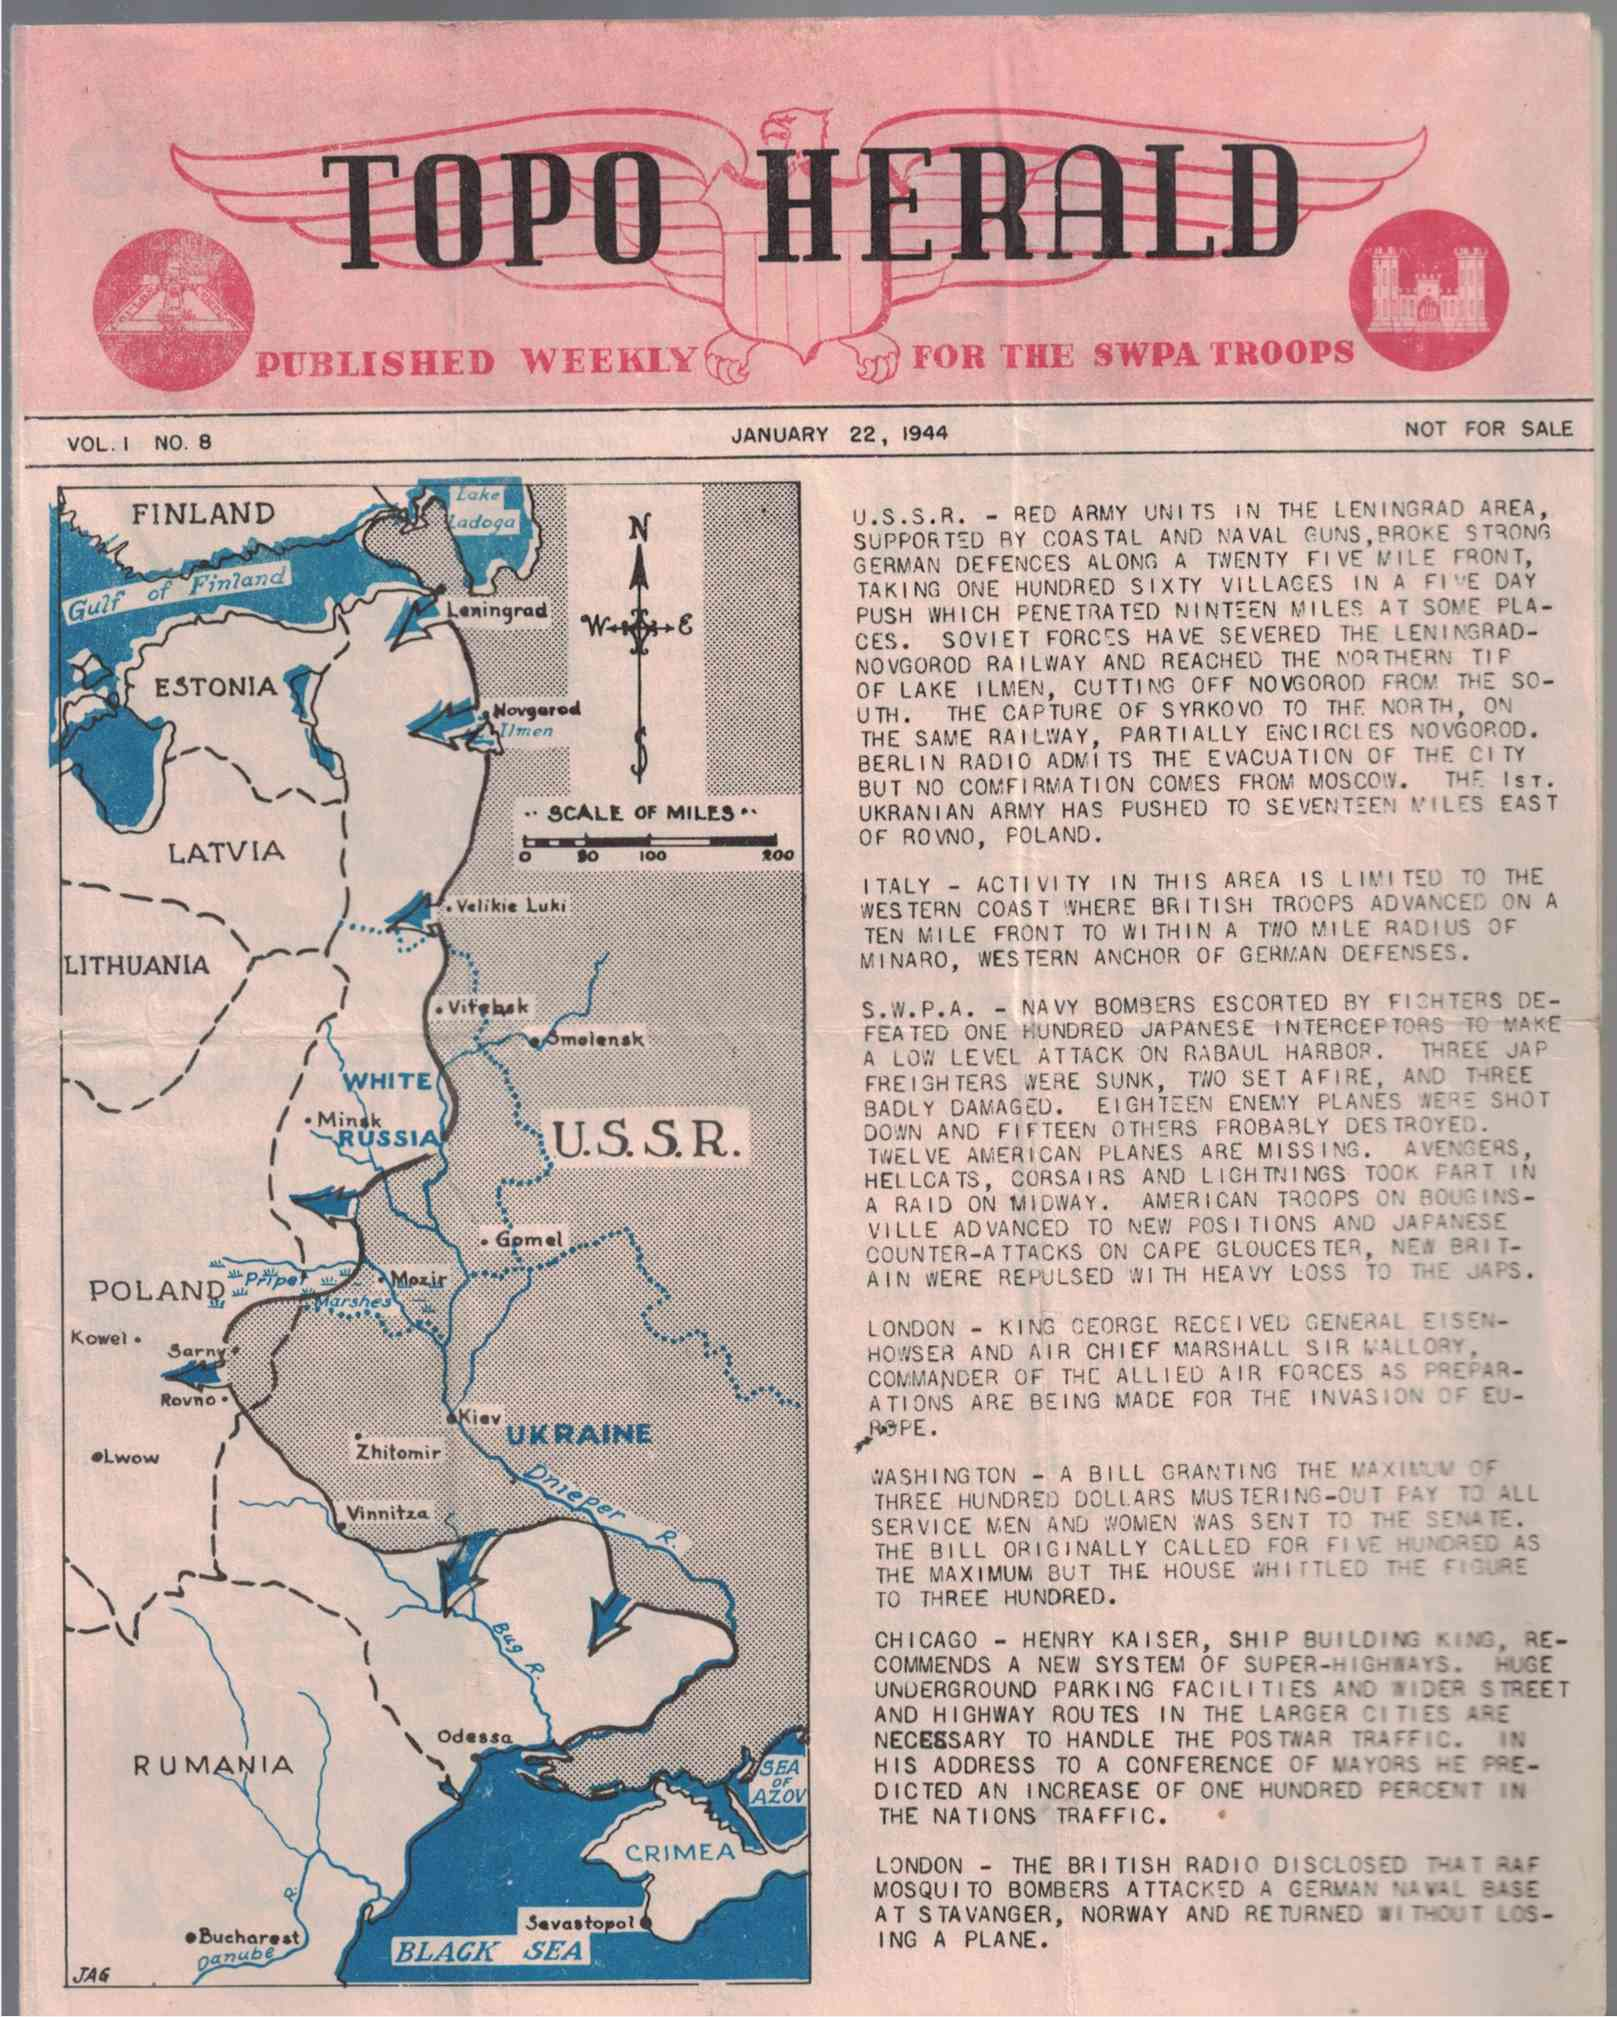 Image for TOPO HERALD (Published Weekly for the SWPA Troops); Vol. 1, No. 8, January 22, 1944